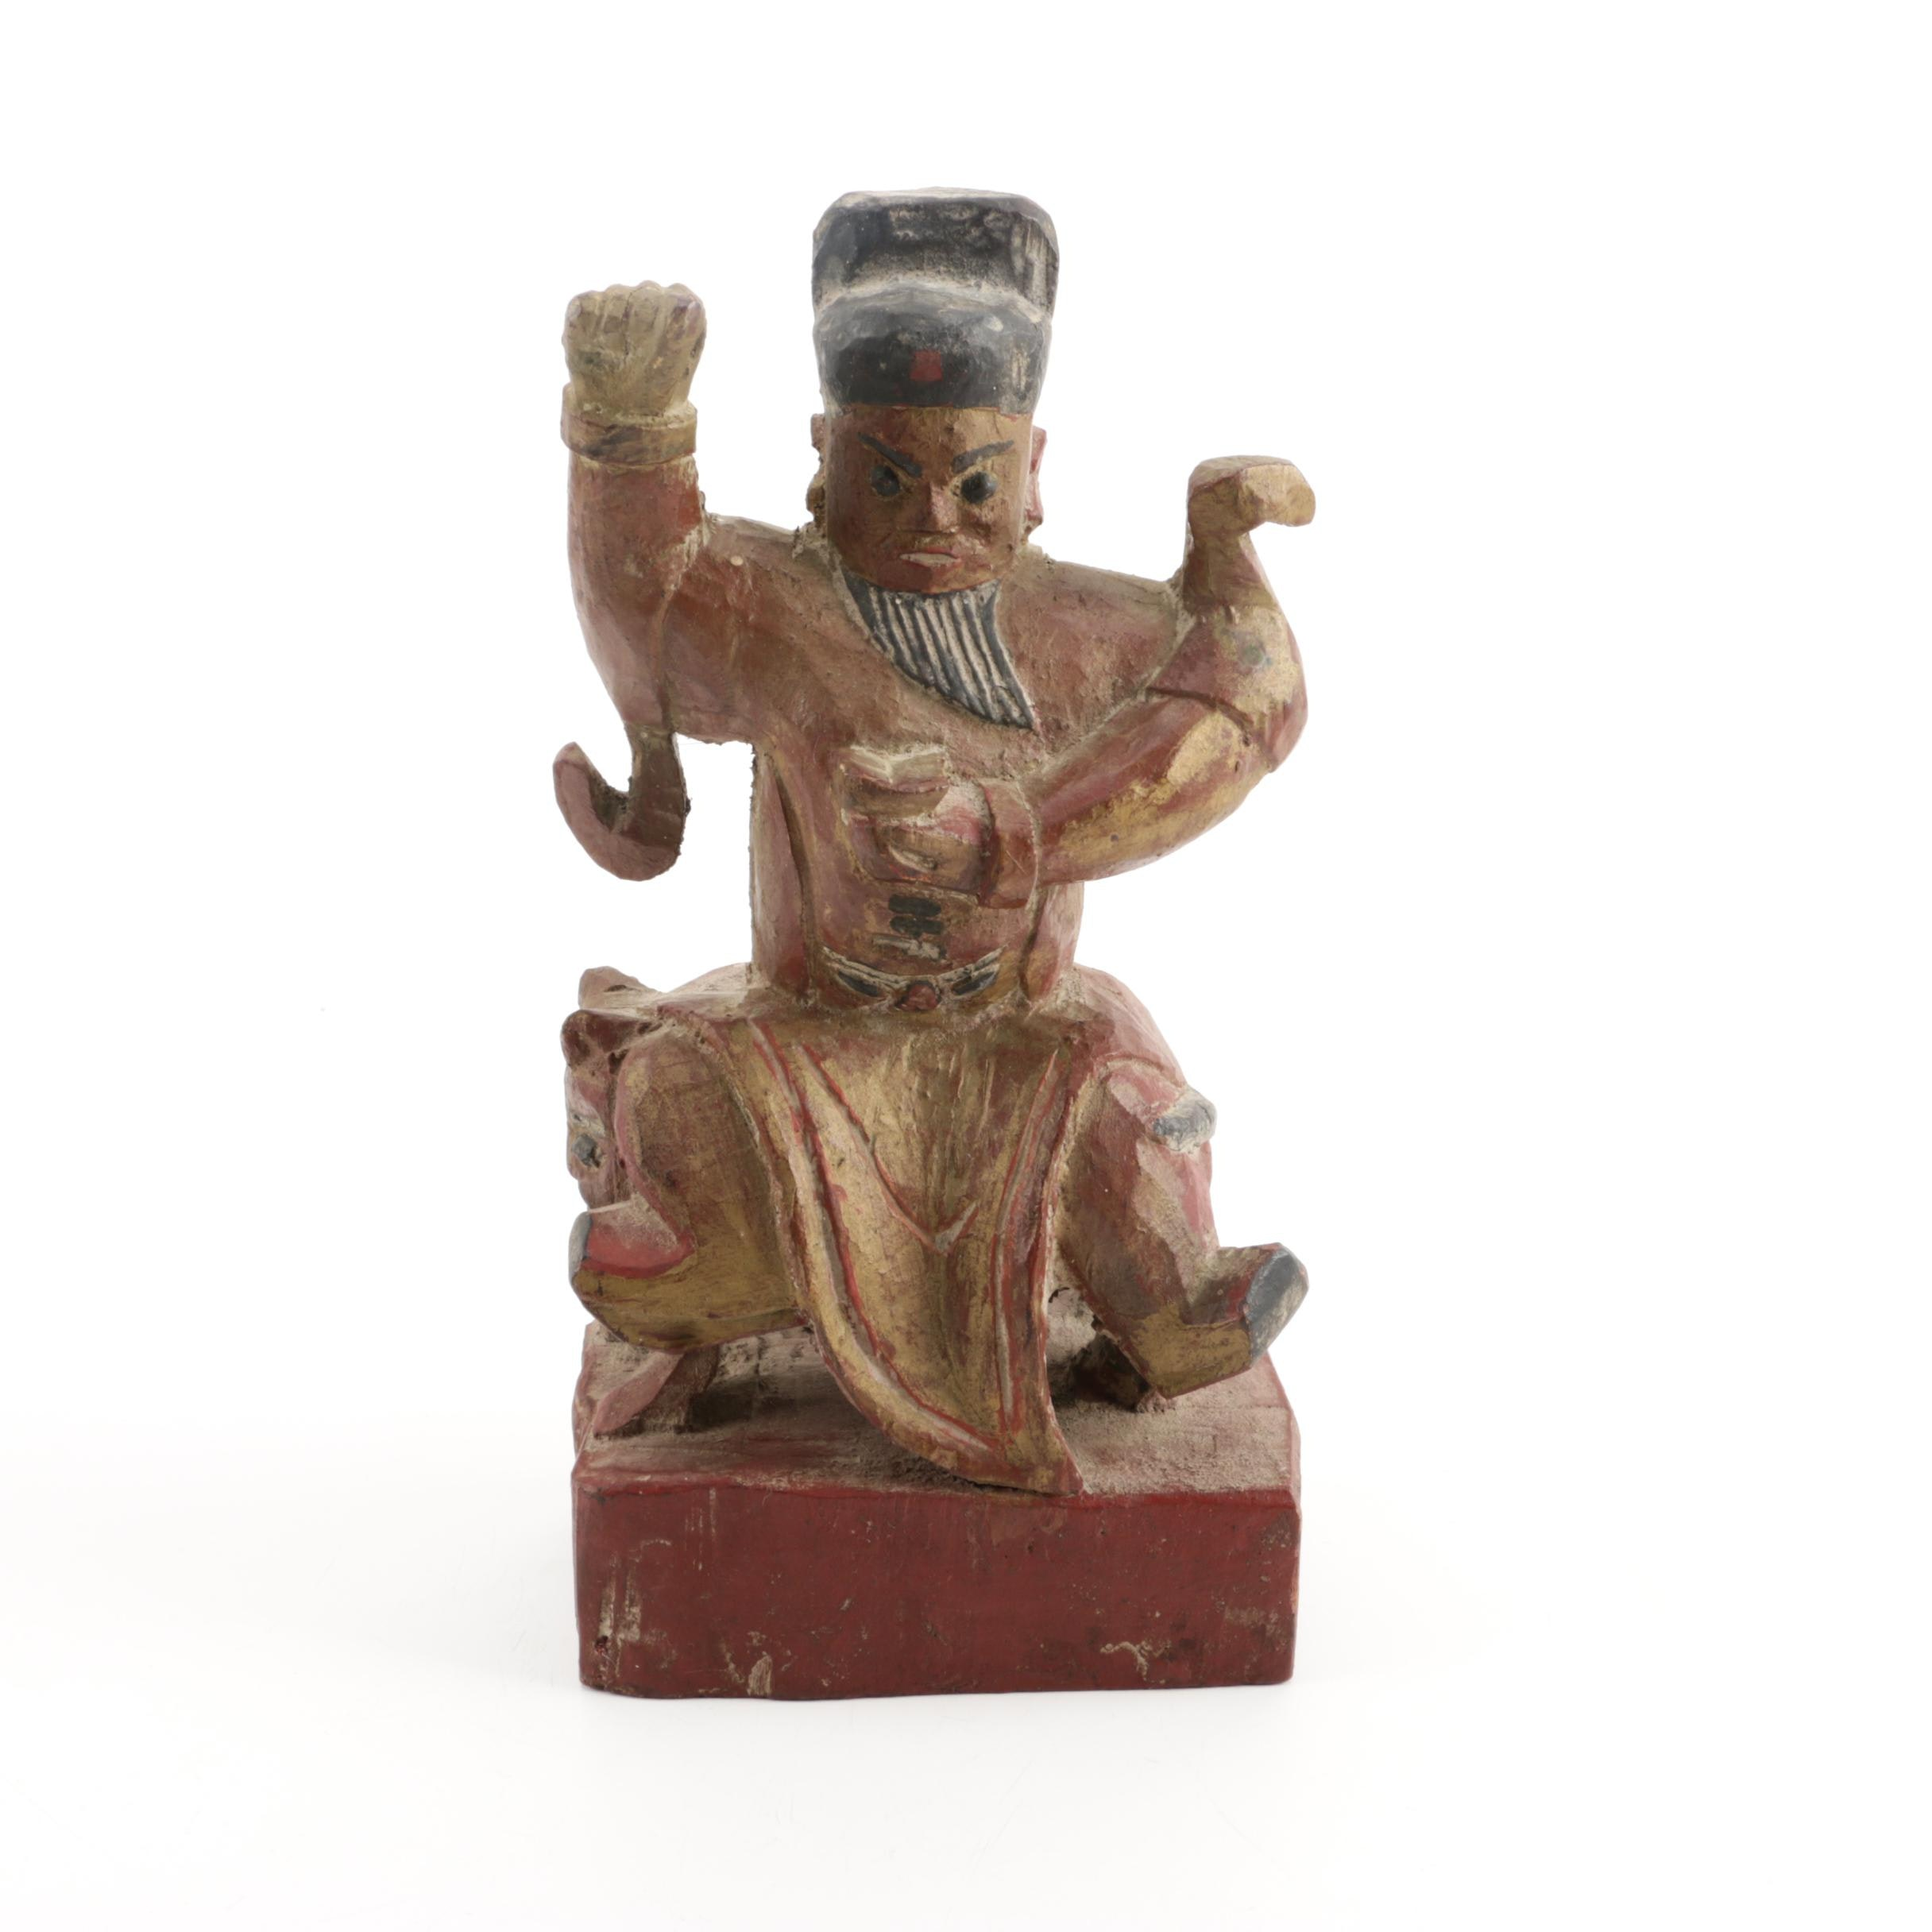 Wooden Figurine of Man Seated on Stylized Animal